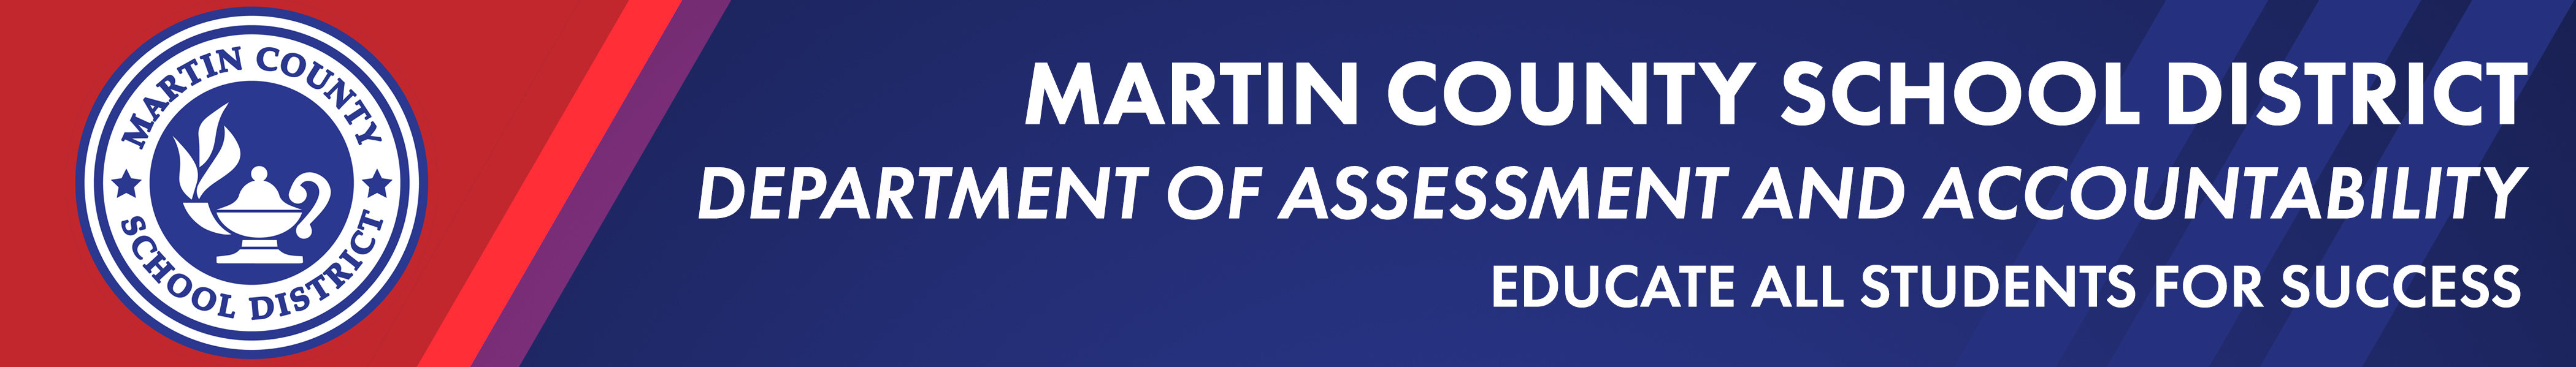 Department of Assessment and Accountability